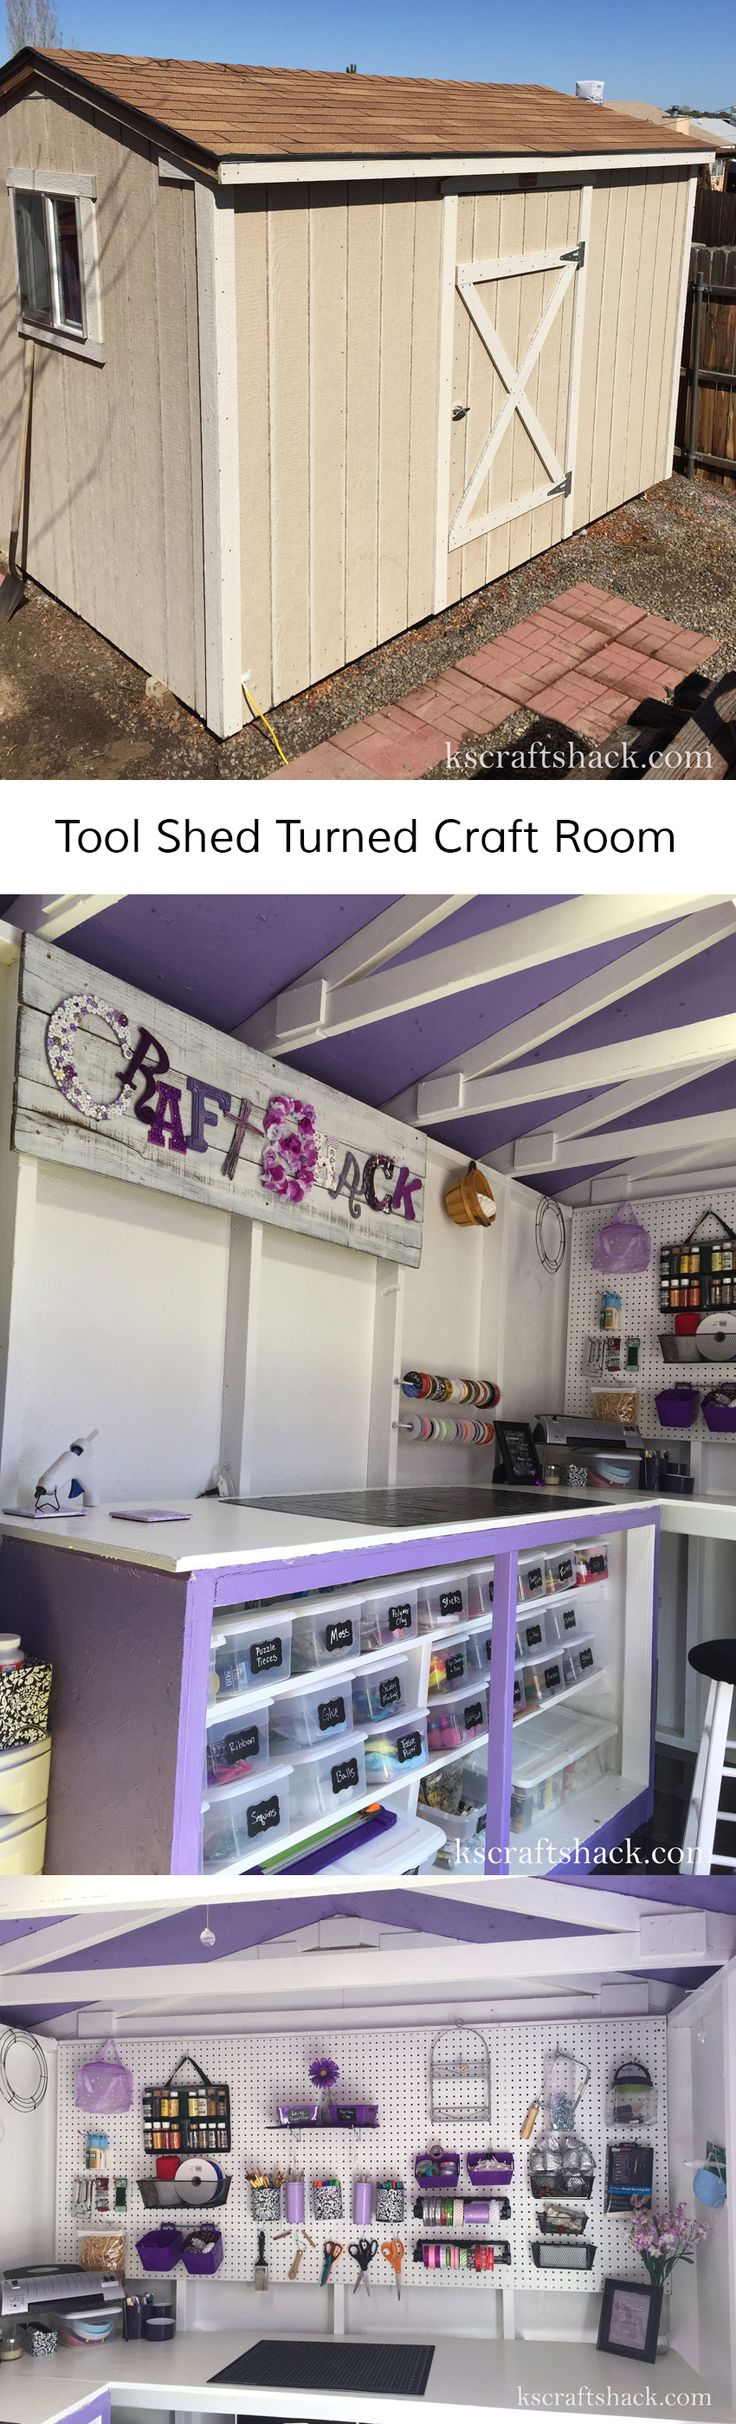 Tool Shed Turned Craft Room || Great way to have a craft room when there's no room in the house.